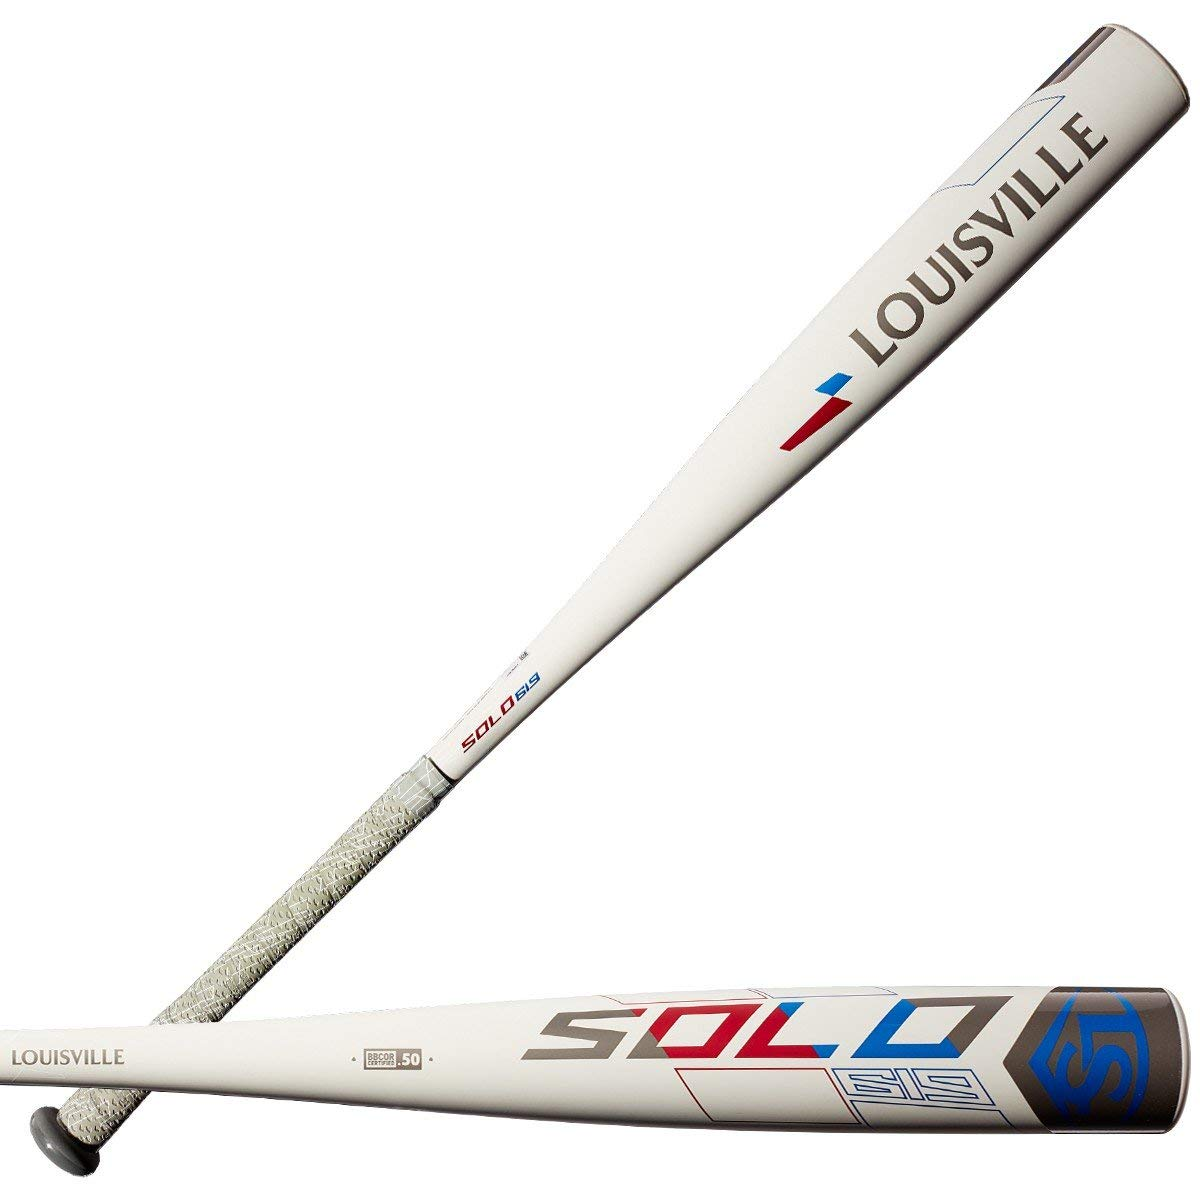 louisville-slugger-2019-solo-619-3-bbcor-baseball-bat-31-inch-28-oz WTLBBS619B331  887768712761 The new Solo 619 brings the speed you need in your